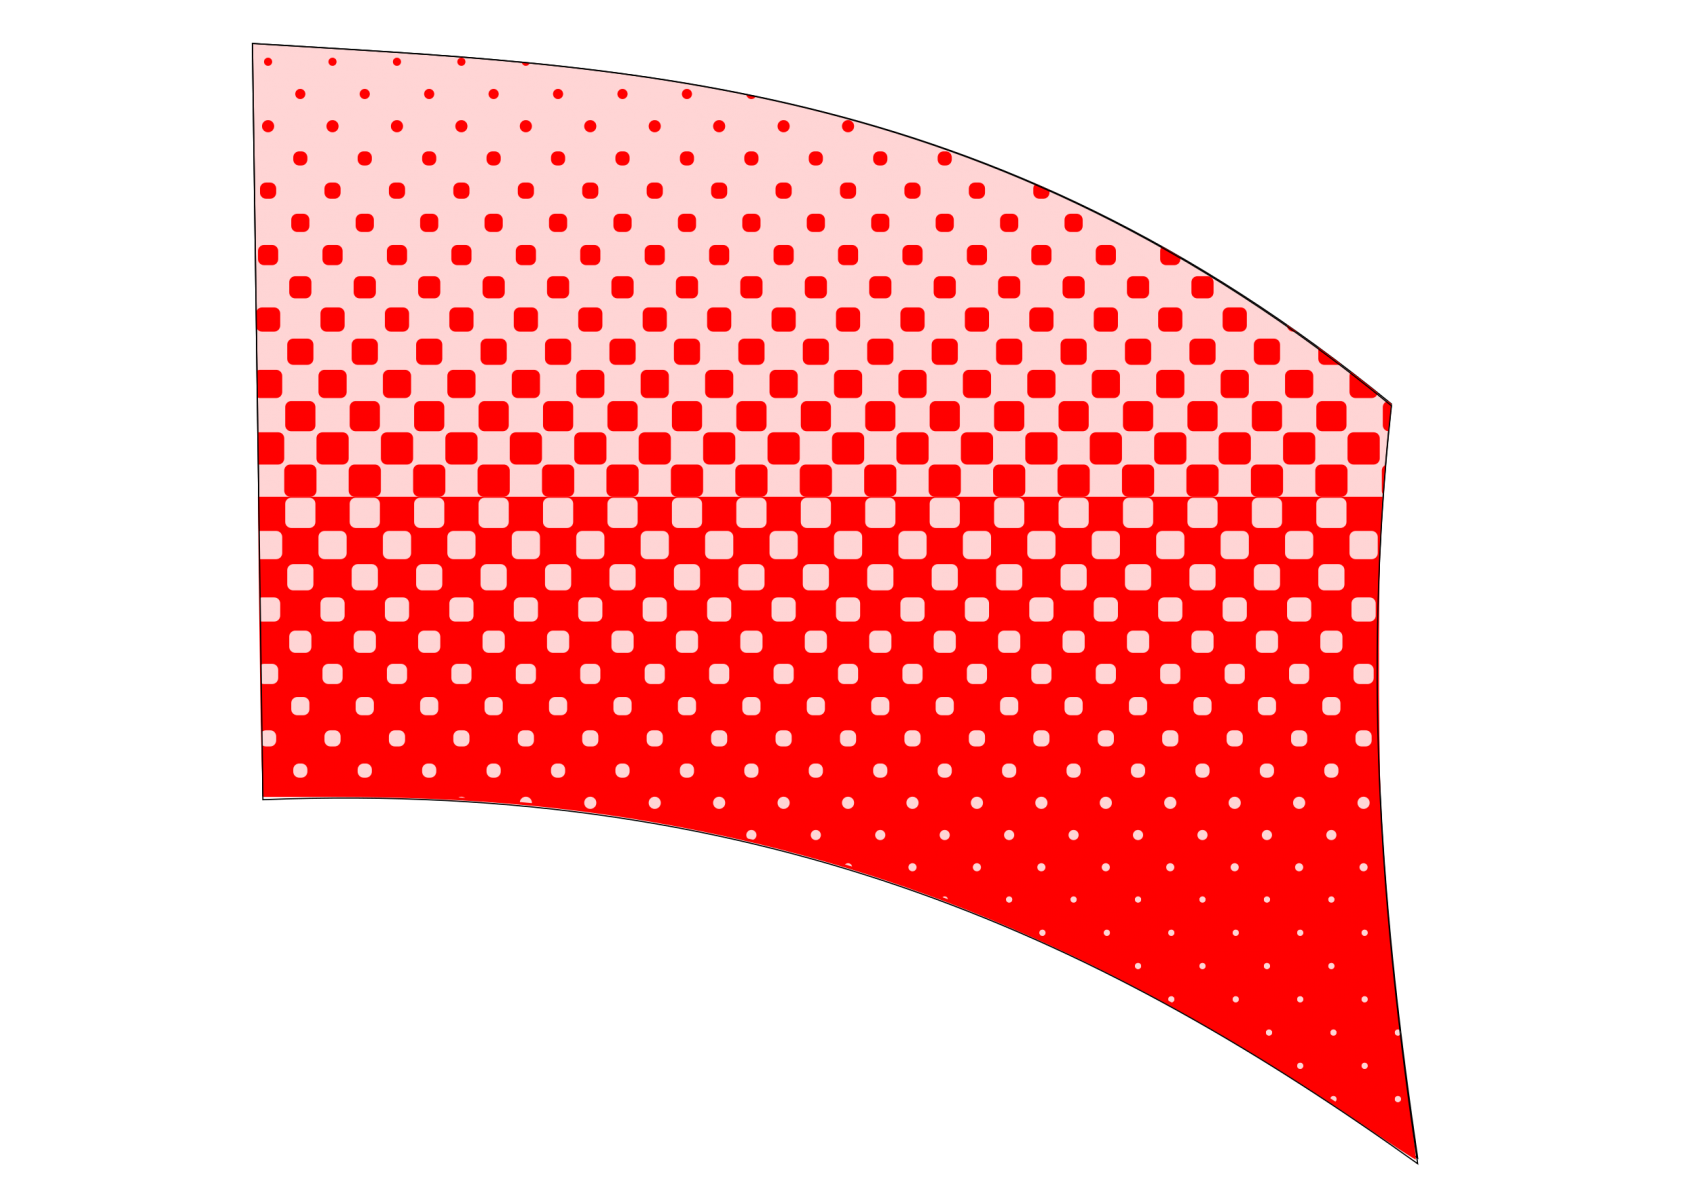 010501s - 36x54 Standard Red Halftone Blend